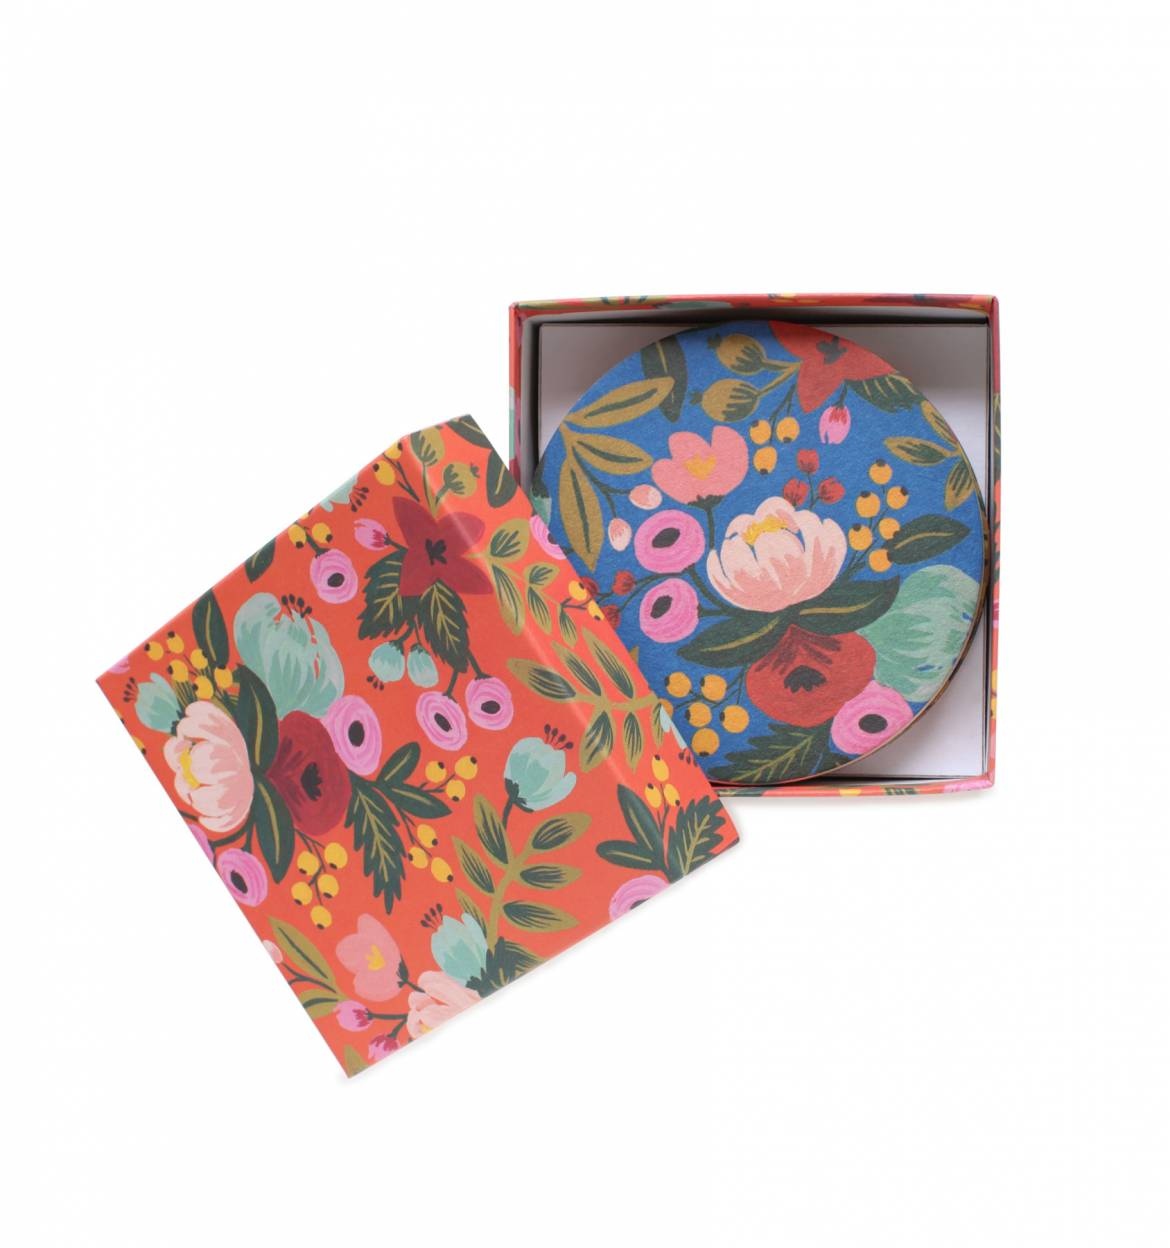 bonbons-floral-coaster-set-rifle-paper-co-1